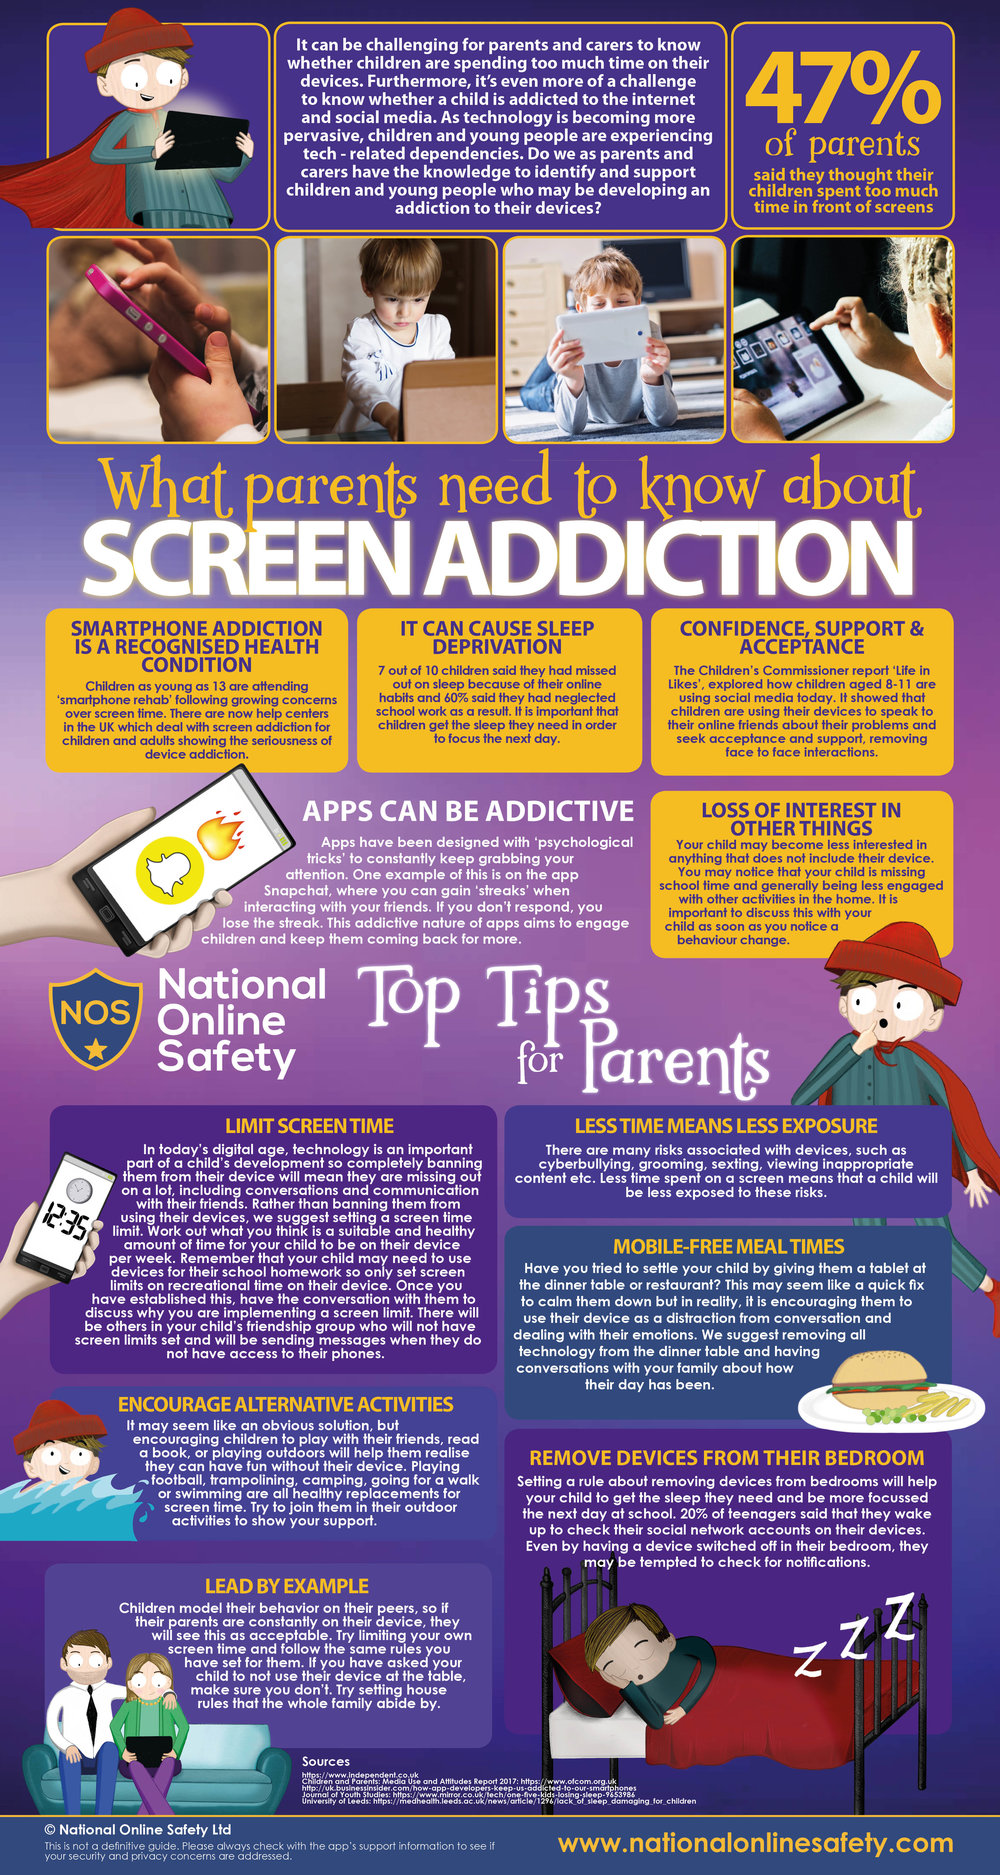 Screen-Addiction-Guide-May-2018.jpg